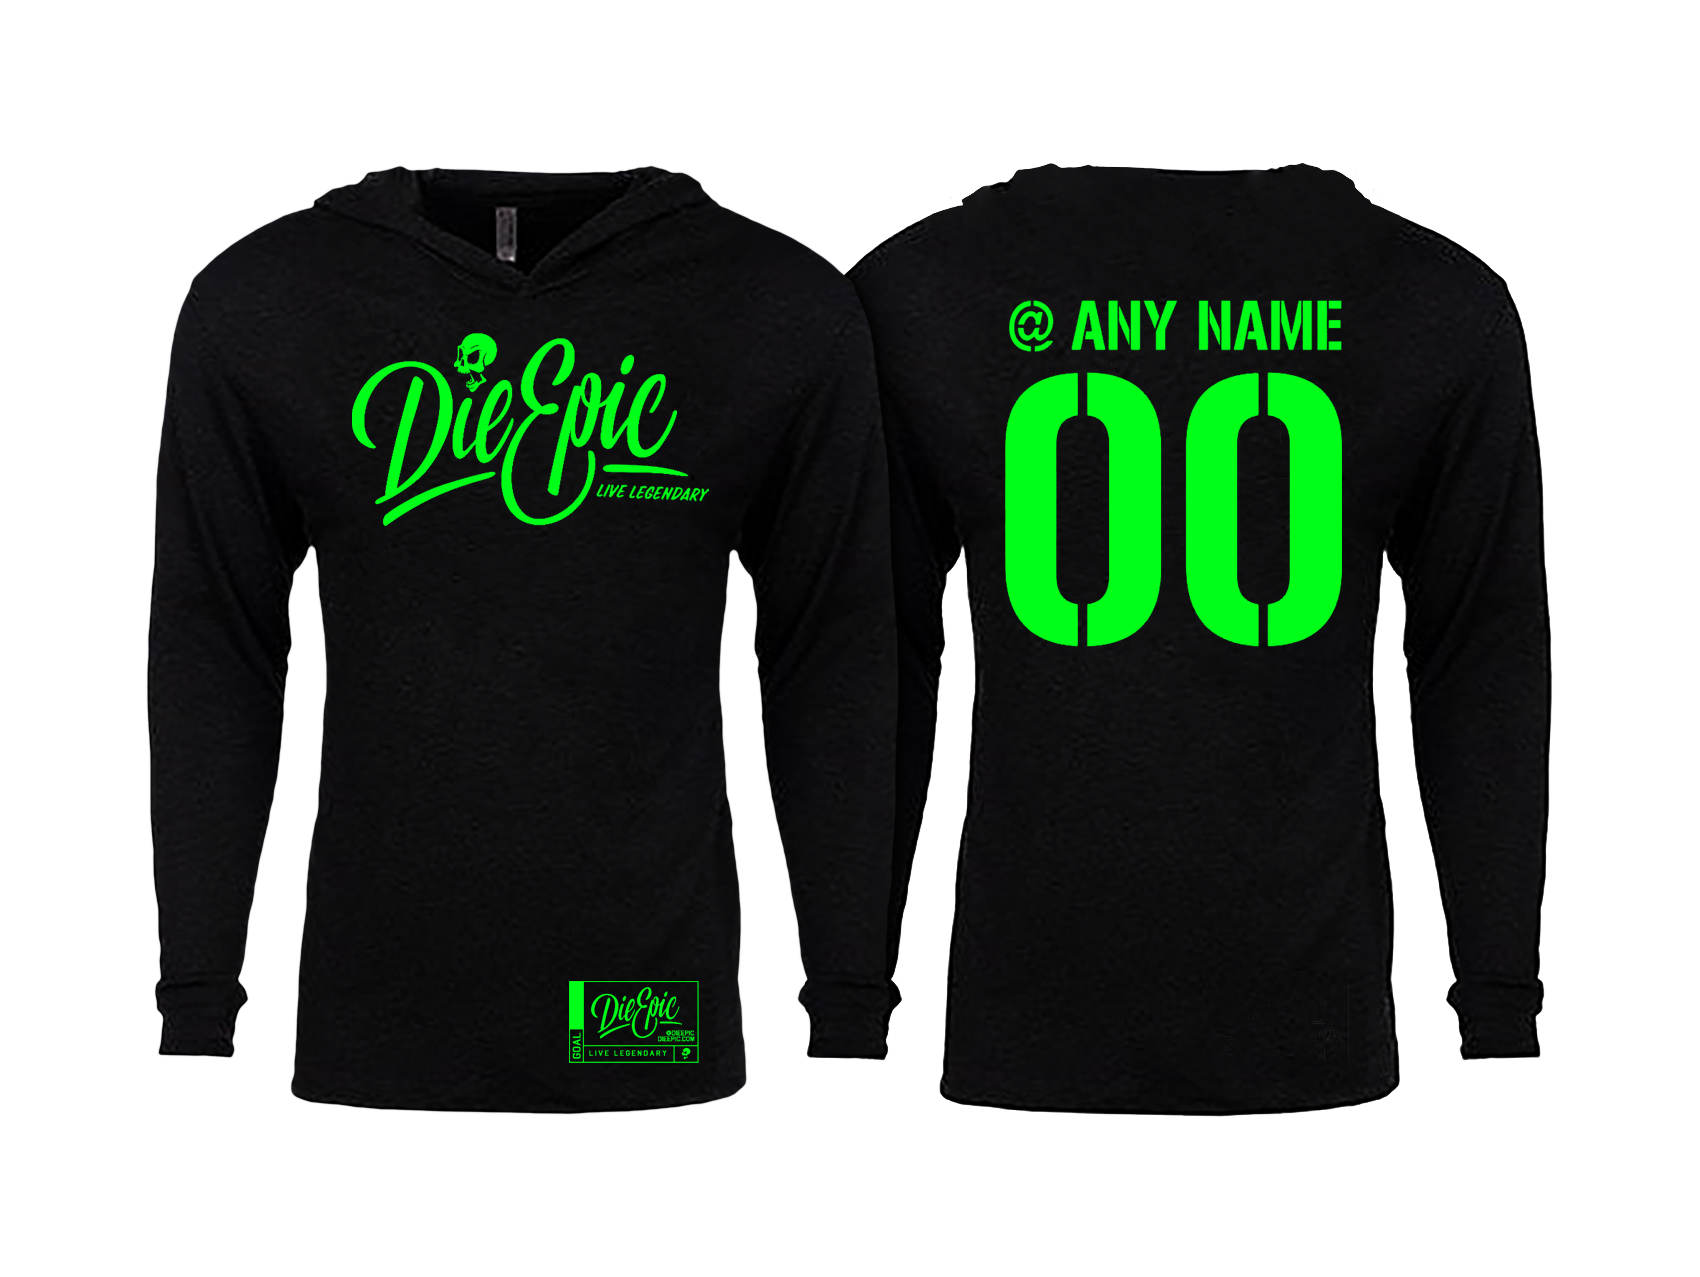 Personalized Thin Pullover Hoodies - Die Epic® Live Legendary Epic ... e62a060f4cad